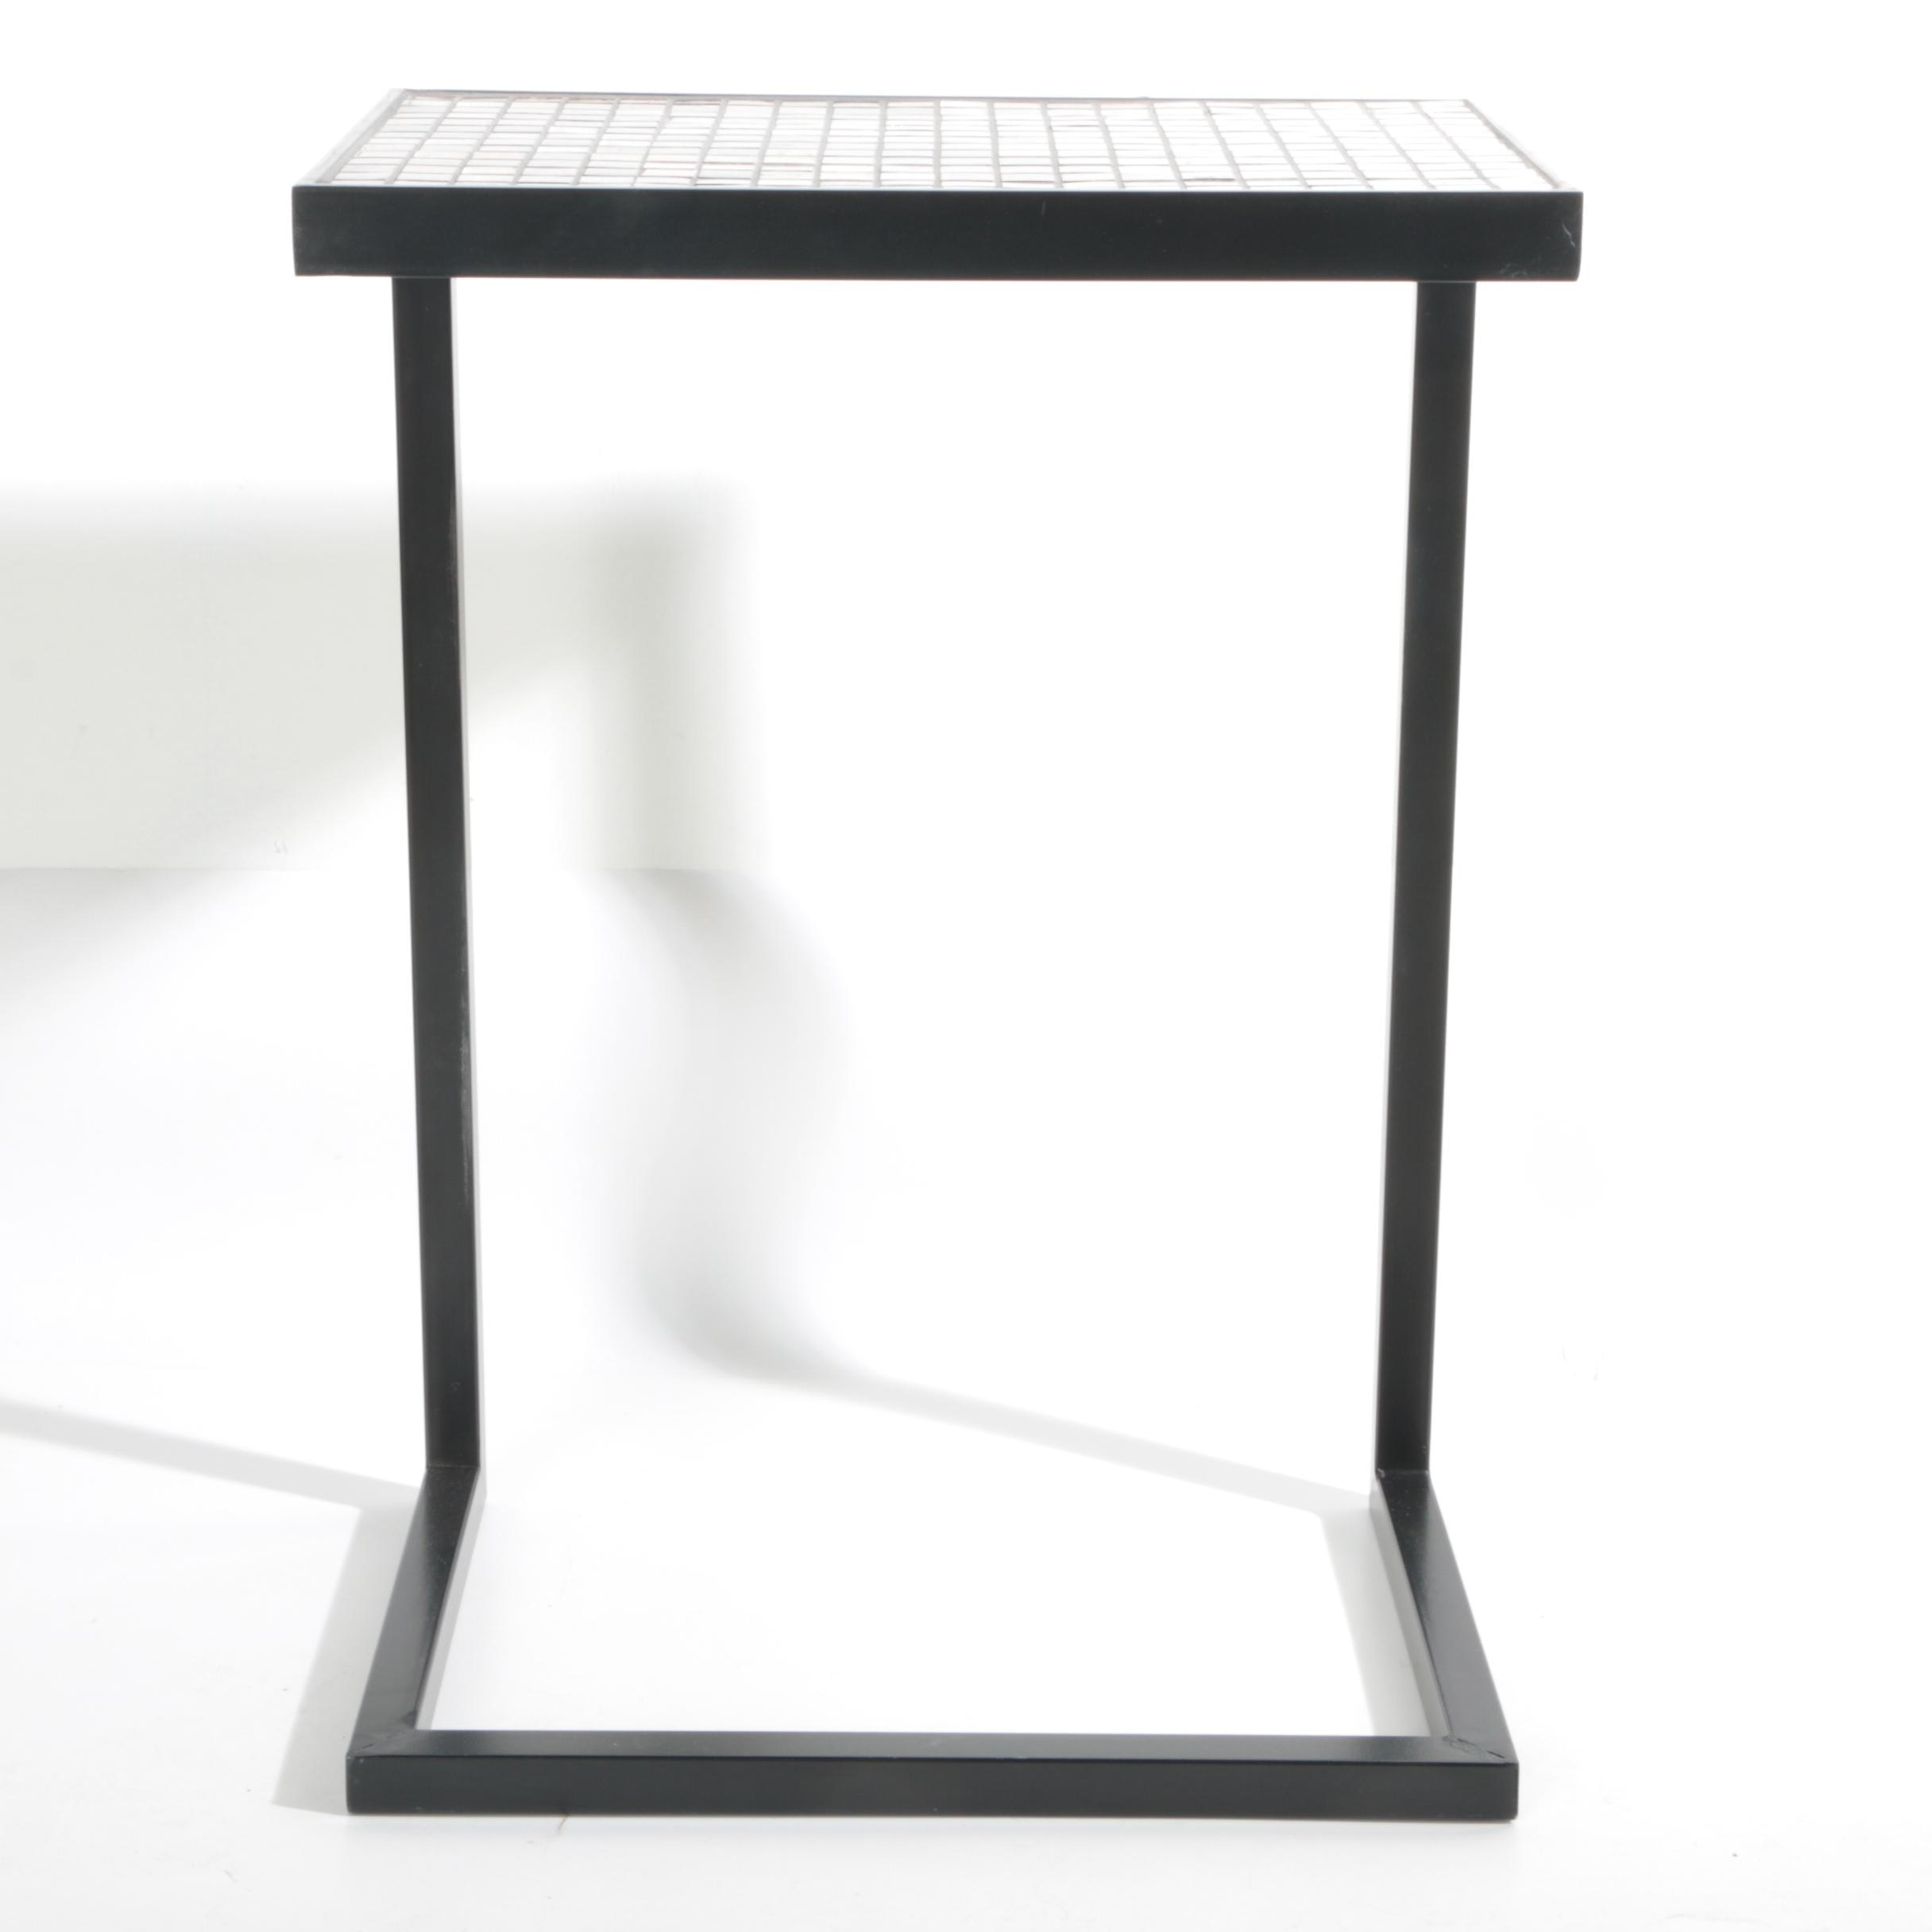 Contemporary Tiled Side Table from Pier 1 Imports